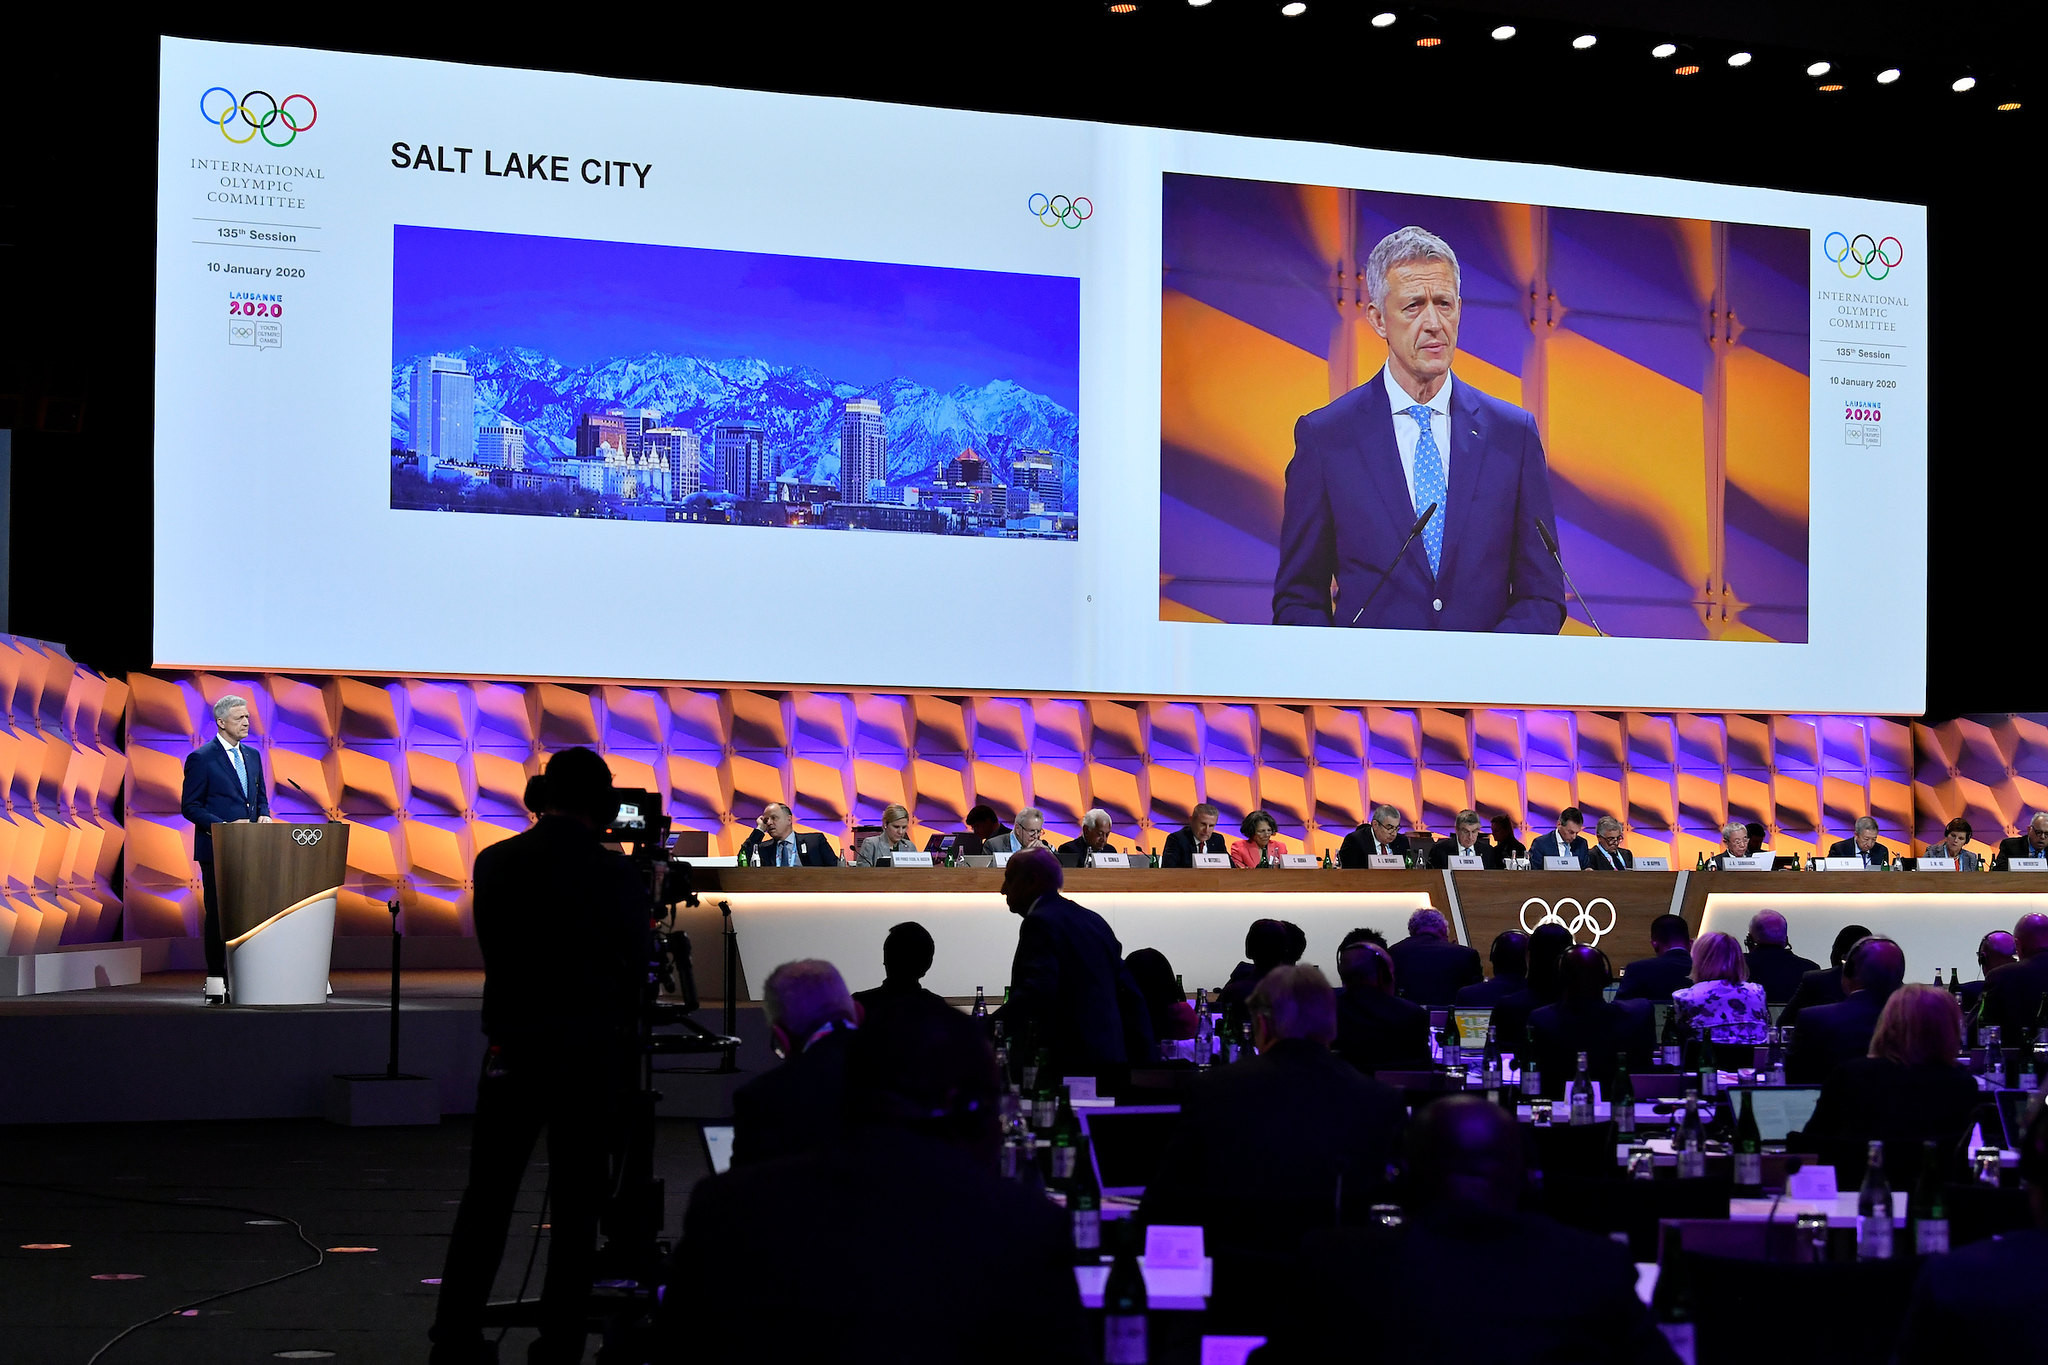 IOC Future Winter Host Commission chairman Octavian Morariu updated the IOC Session on potential Winter Olympic city bidders ©IOC